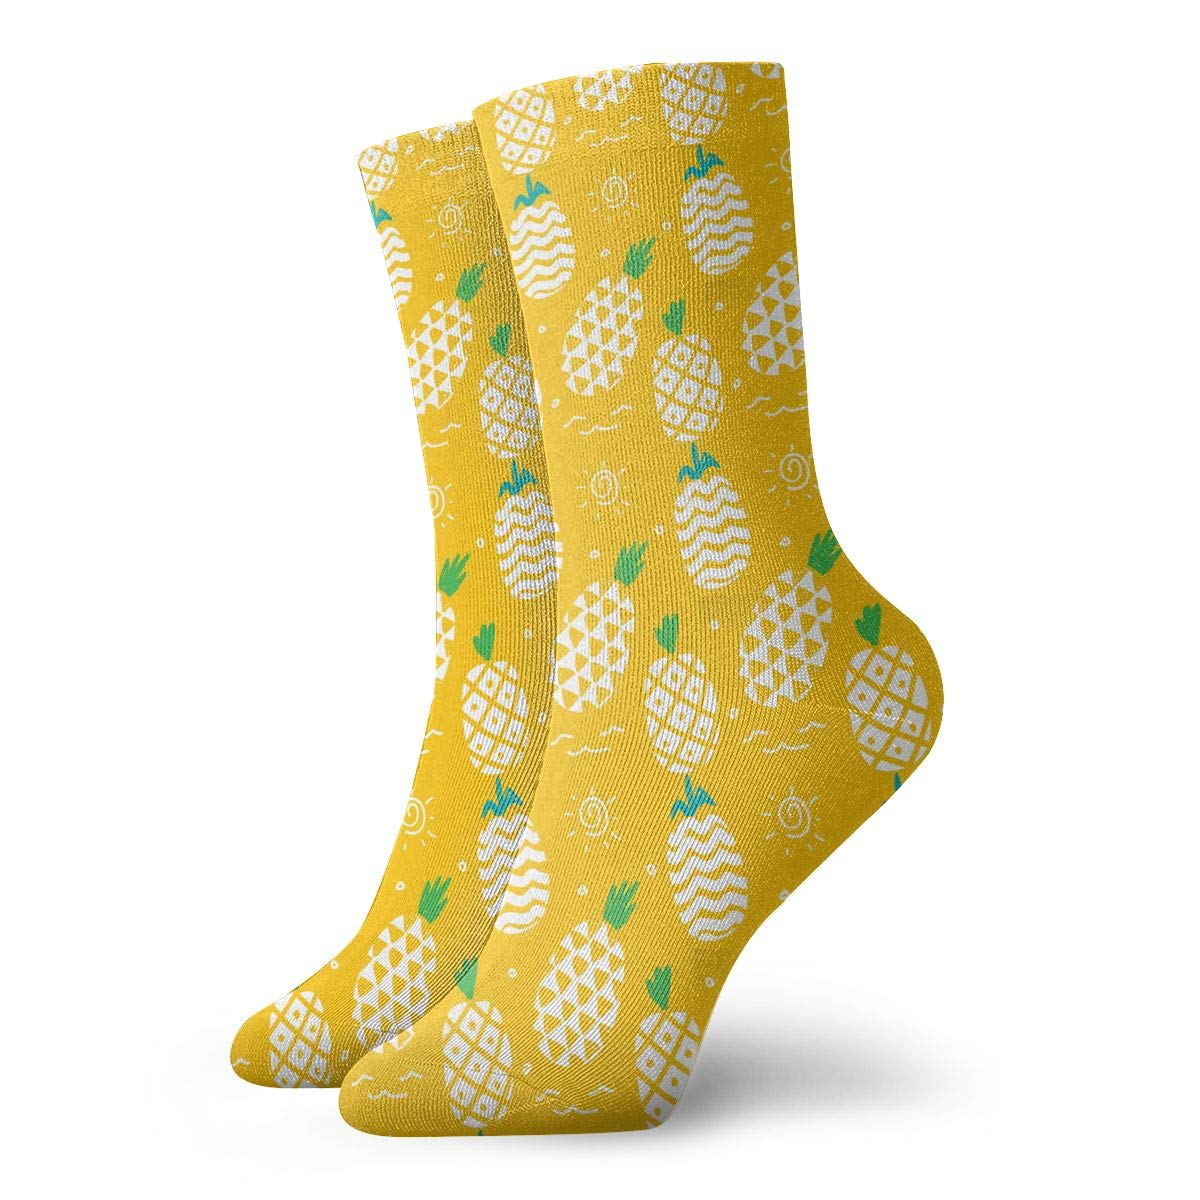 Yellow Cute Pineapple Unisex Funny Casual Crew Socks Athletic Socks For Boys Girls Kids Teenagers